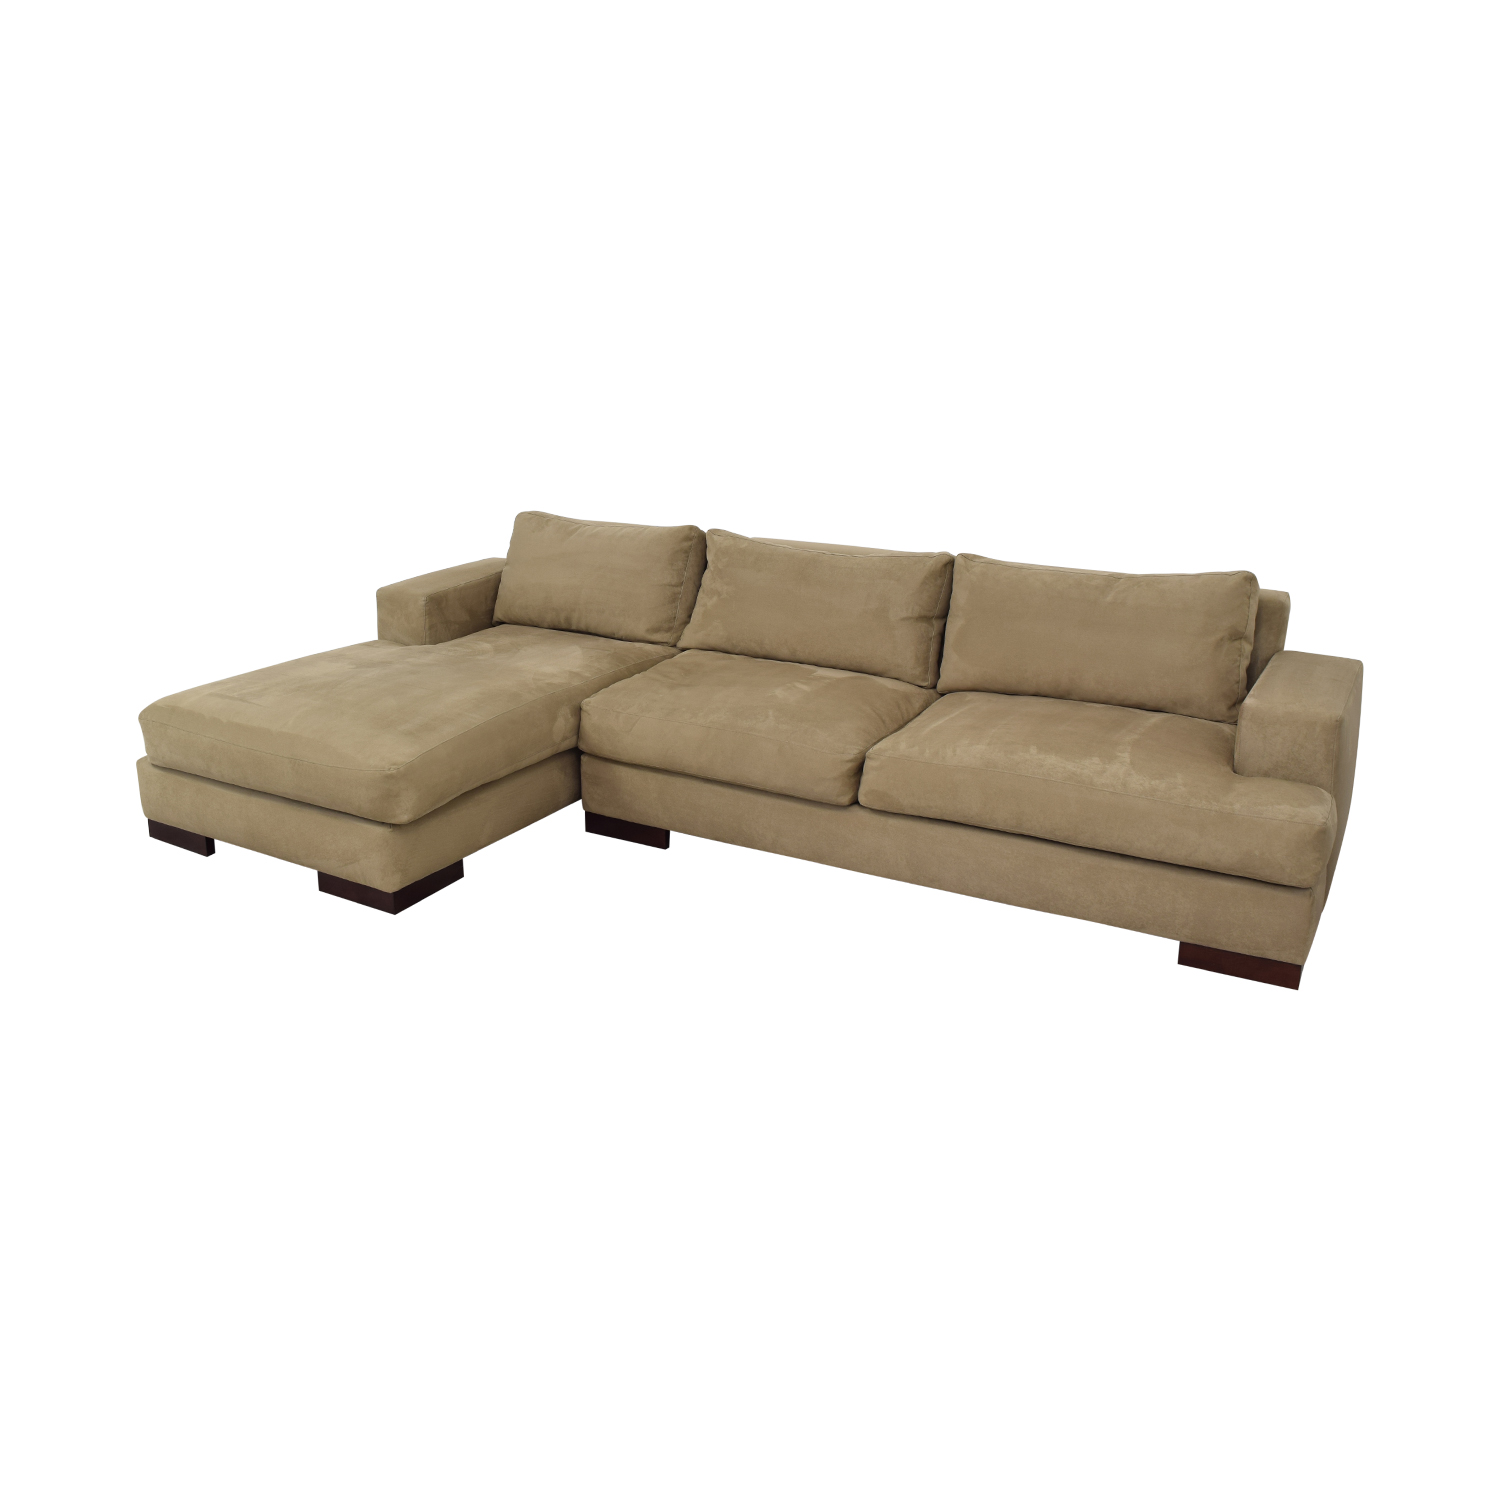 75% OFF - American Leather American Leather Chaise Sectional Sofa / Sofas